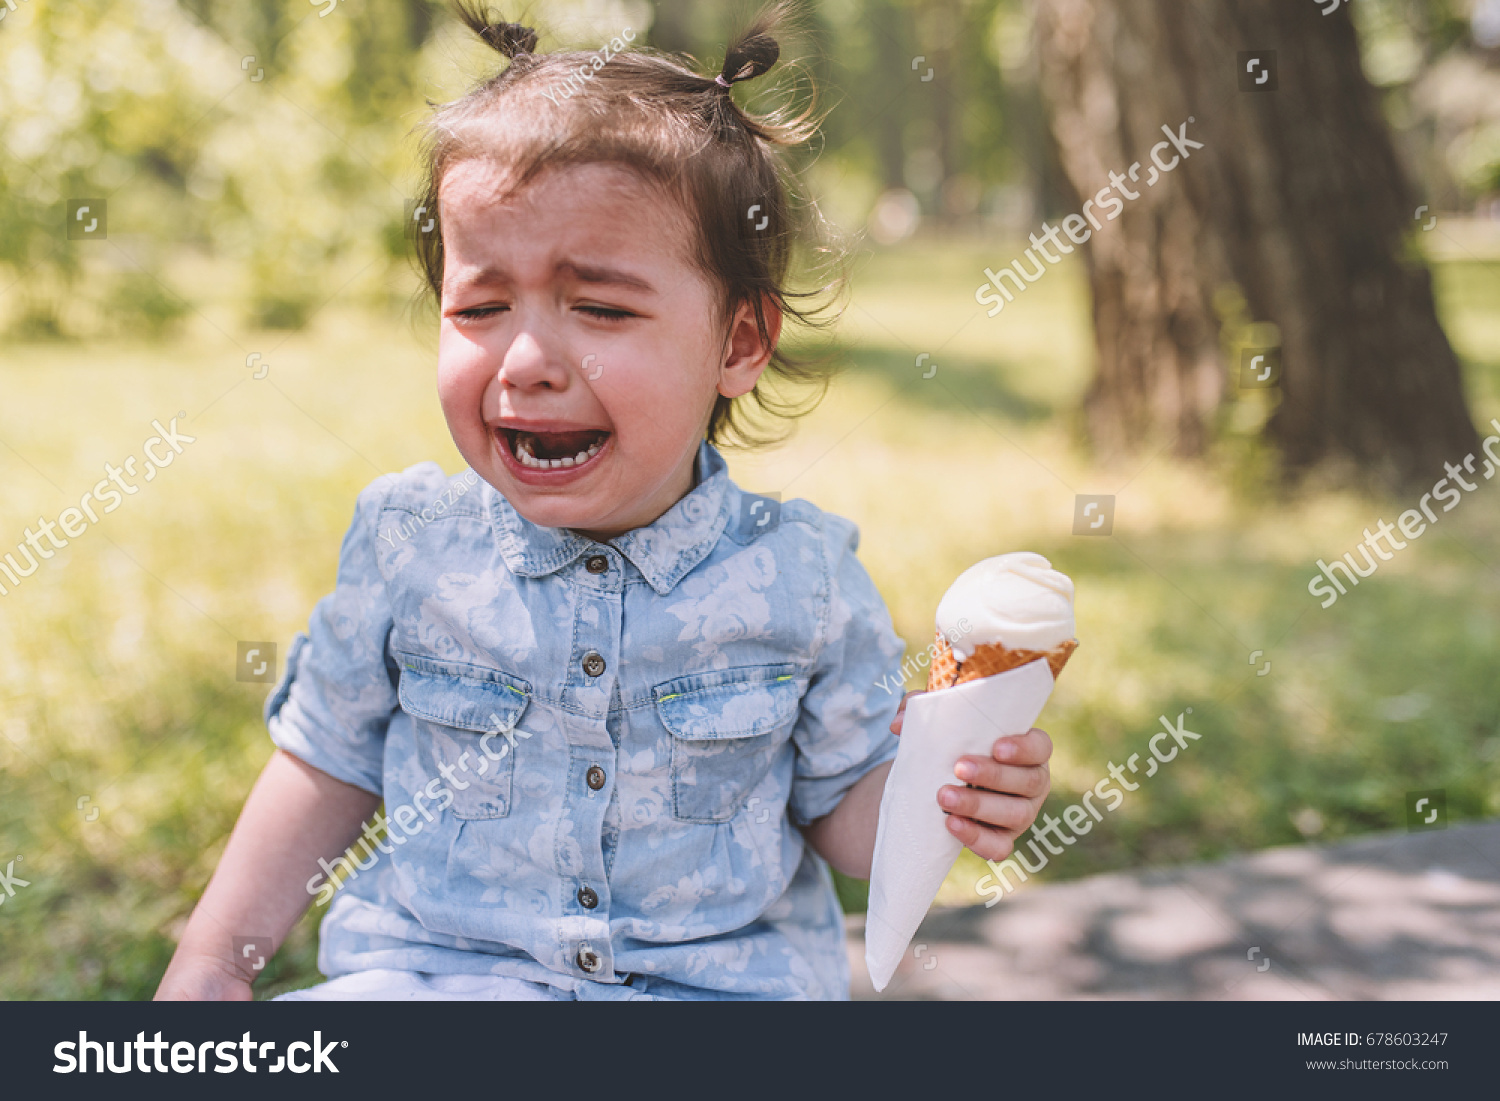 a33906d5bf20 Portrait of sad crying child with ice-cream cone in hand in the park.